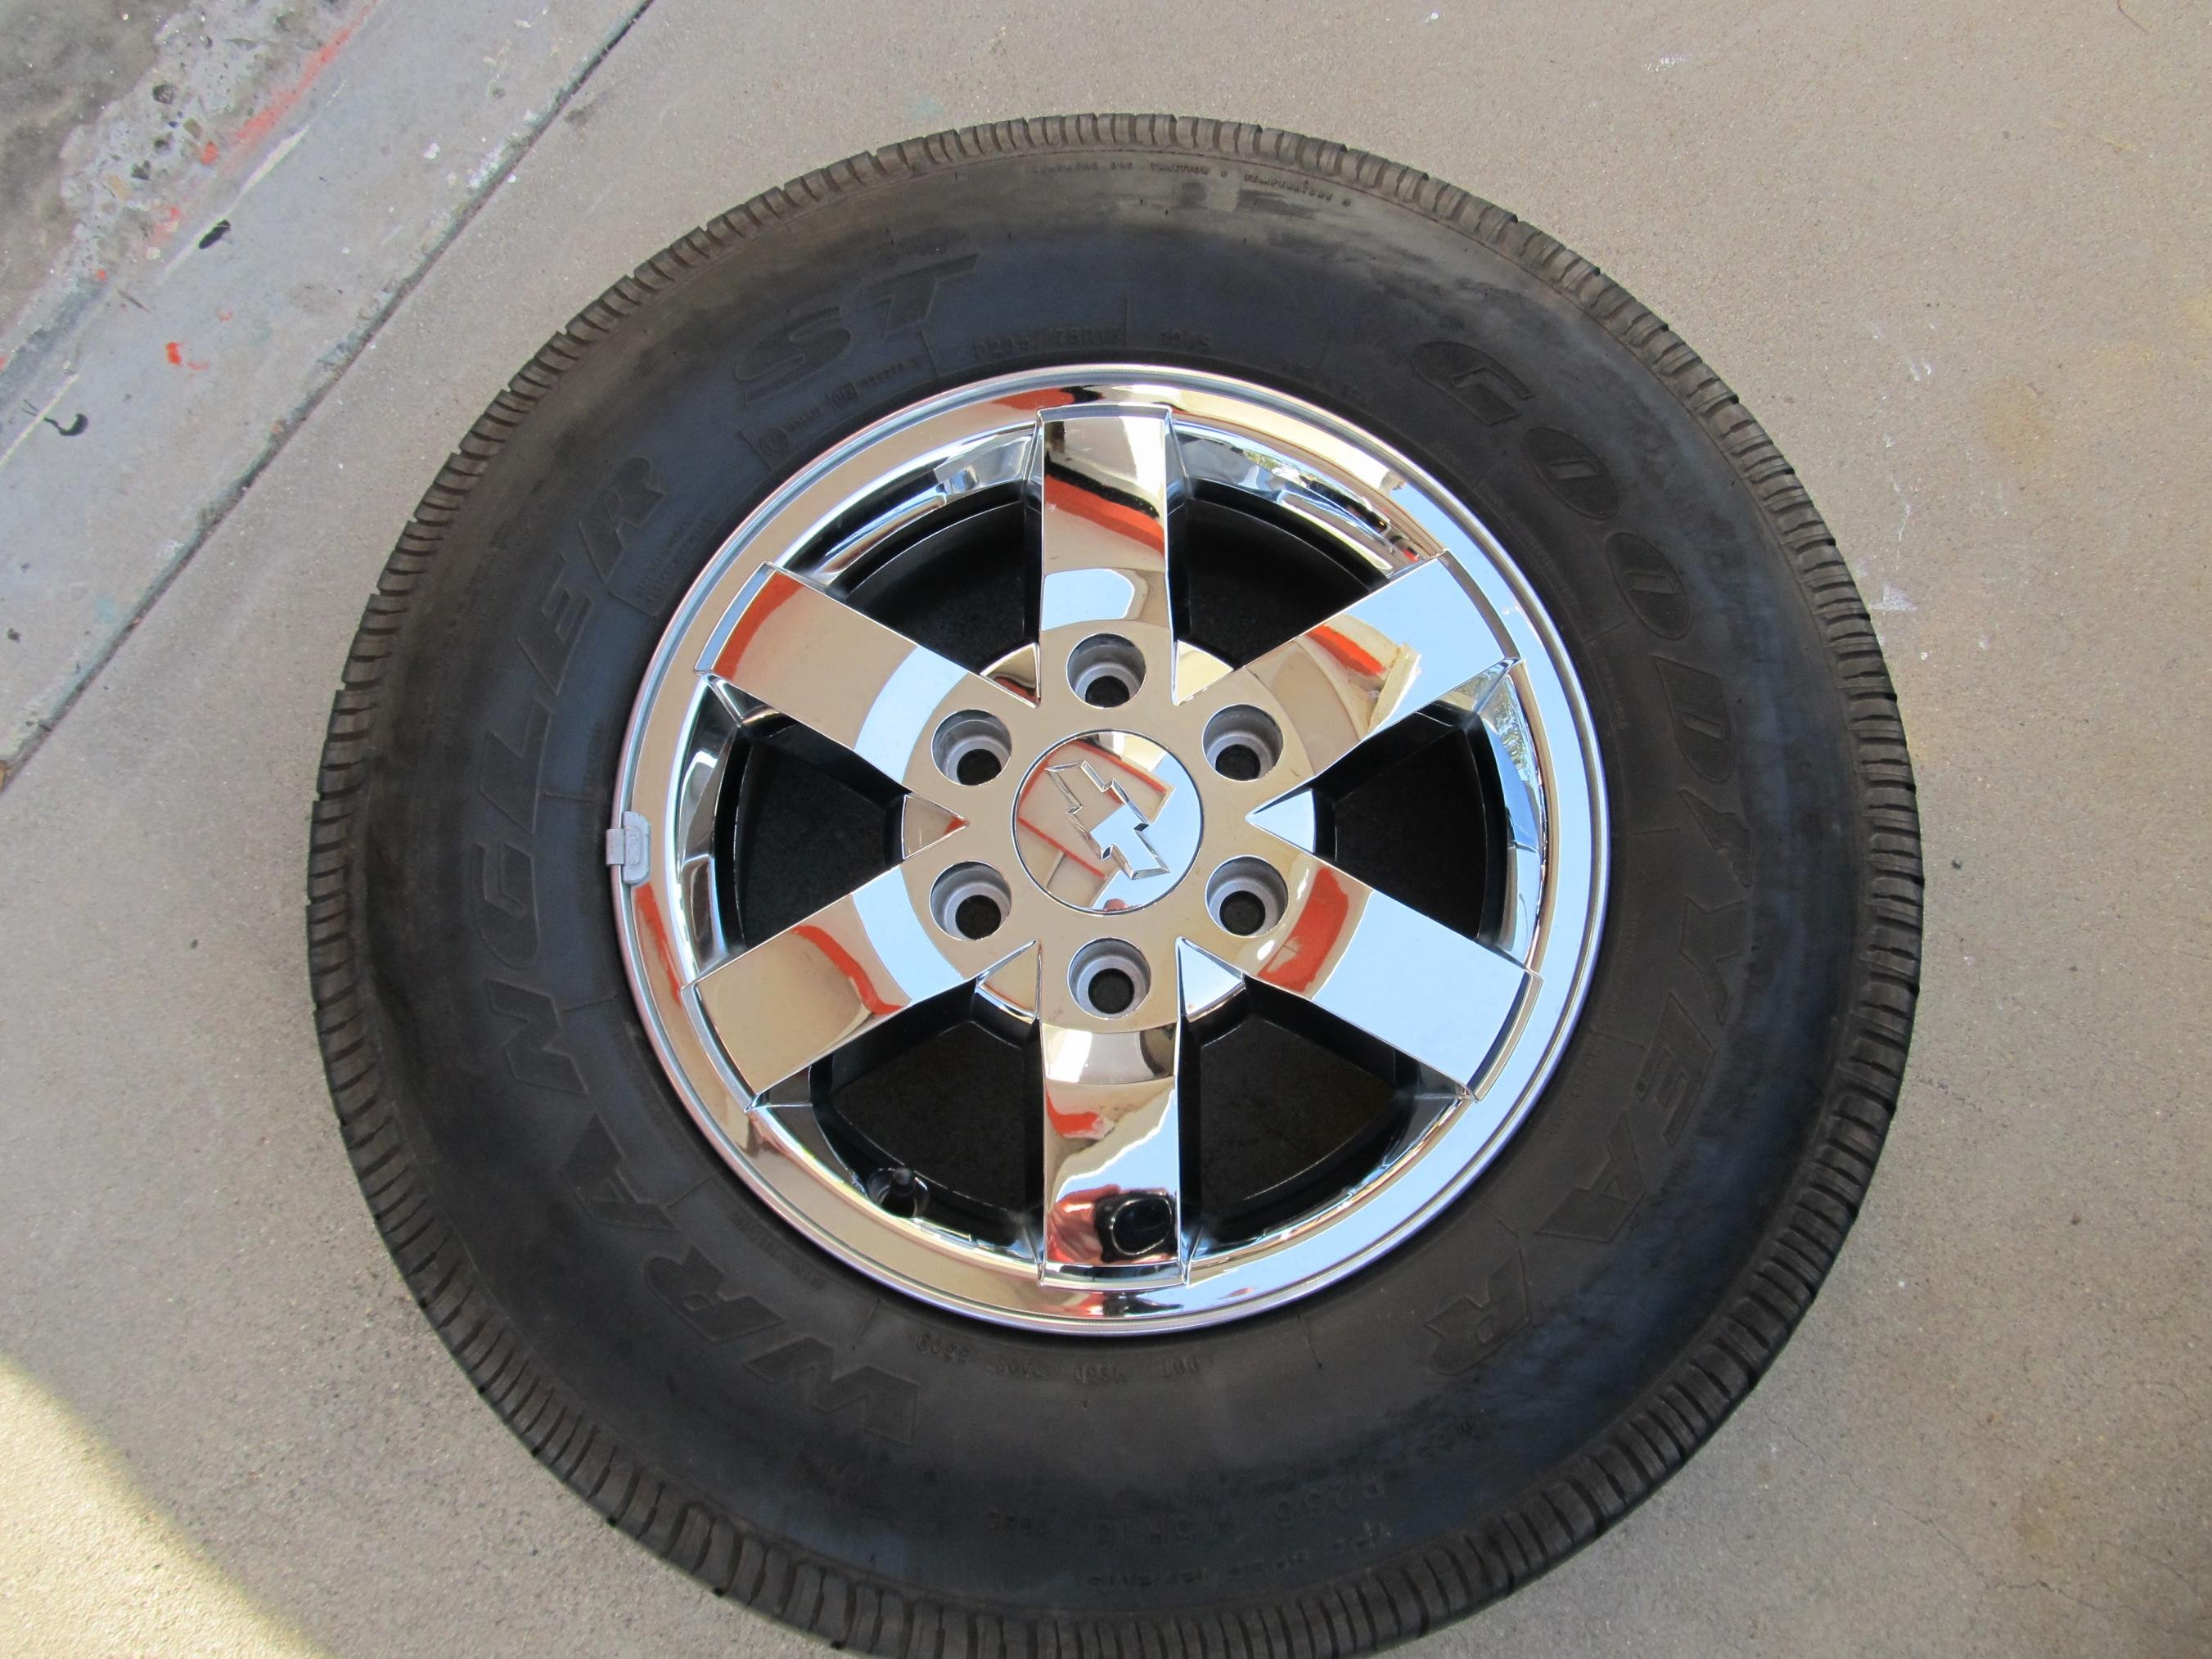 wheels cncd wheel image polish to vs been bar full oem opinion forum tires has is the sized brand off click caps take automotive page this chevrolet resized discussions chevy declads paint new original view